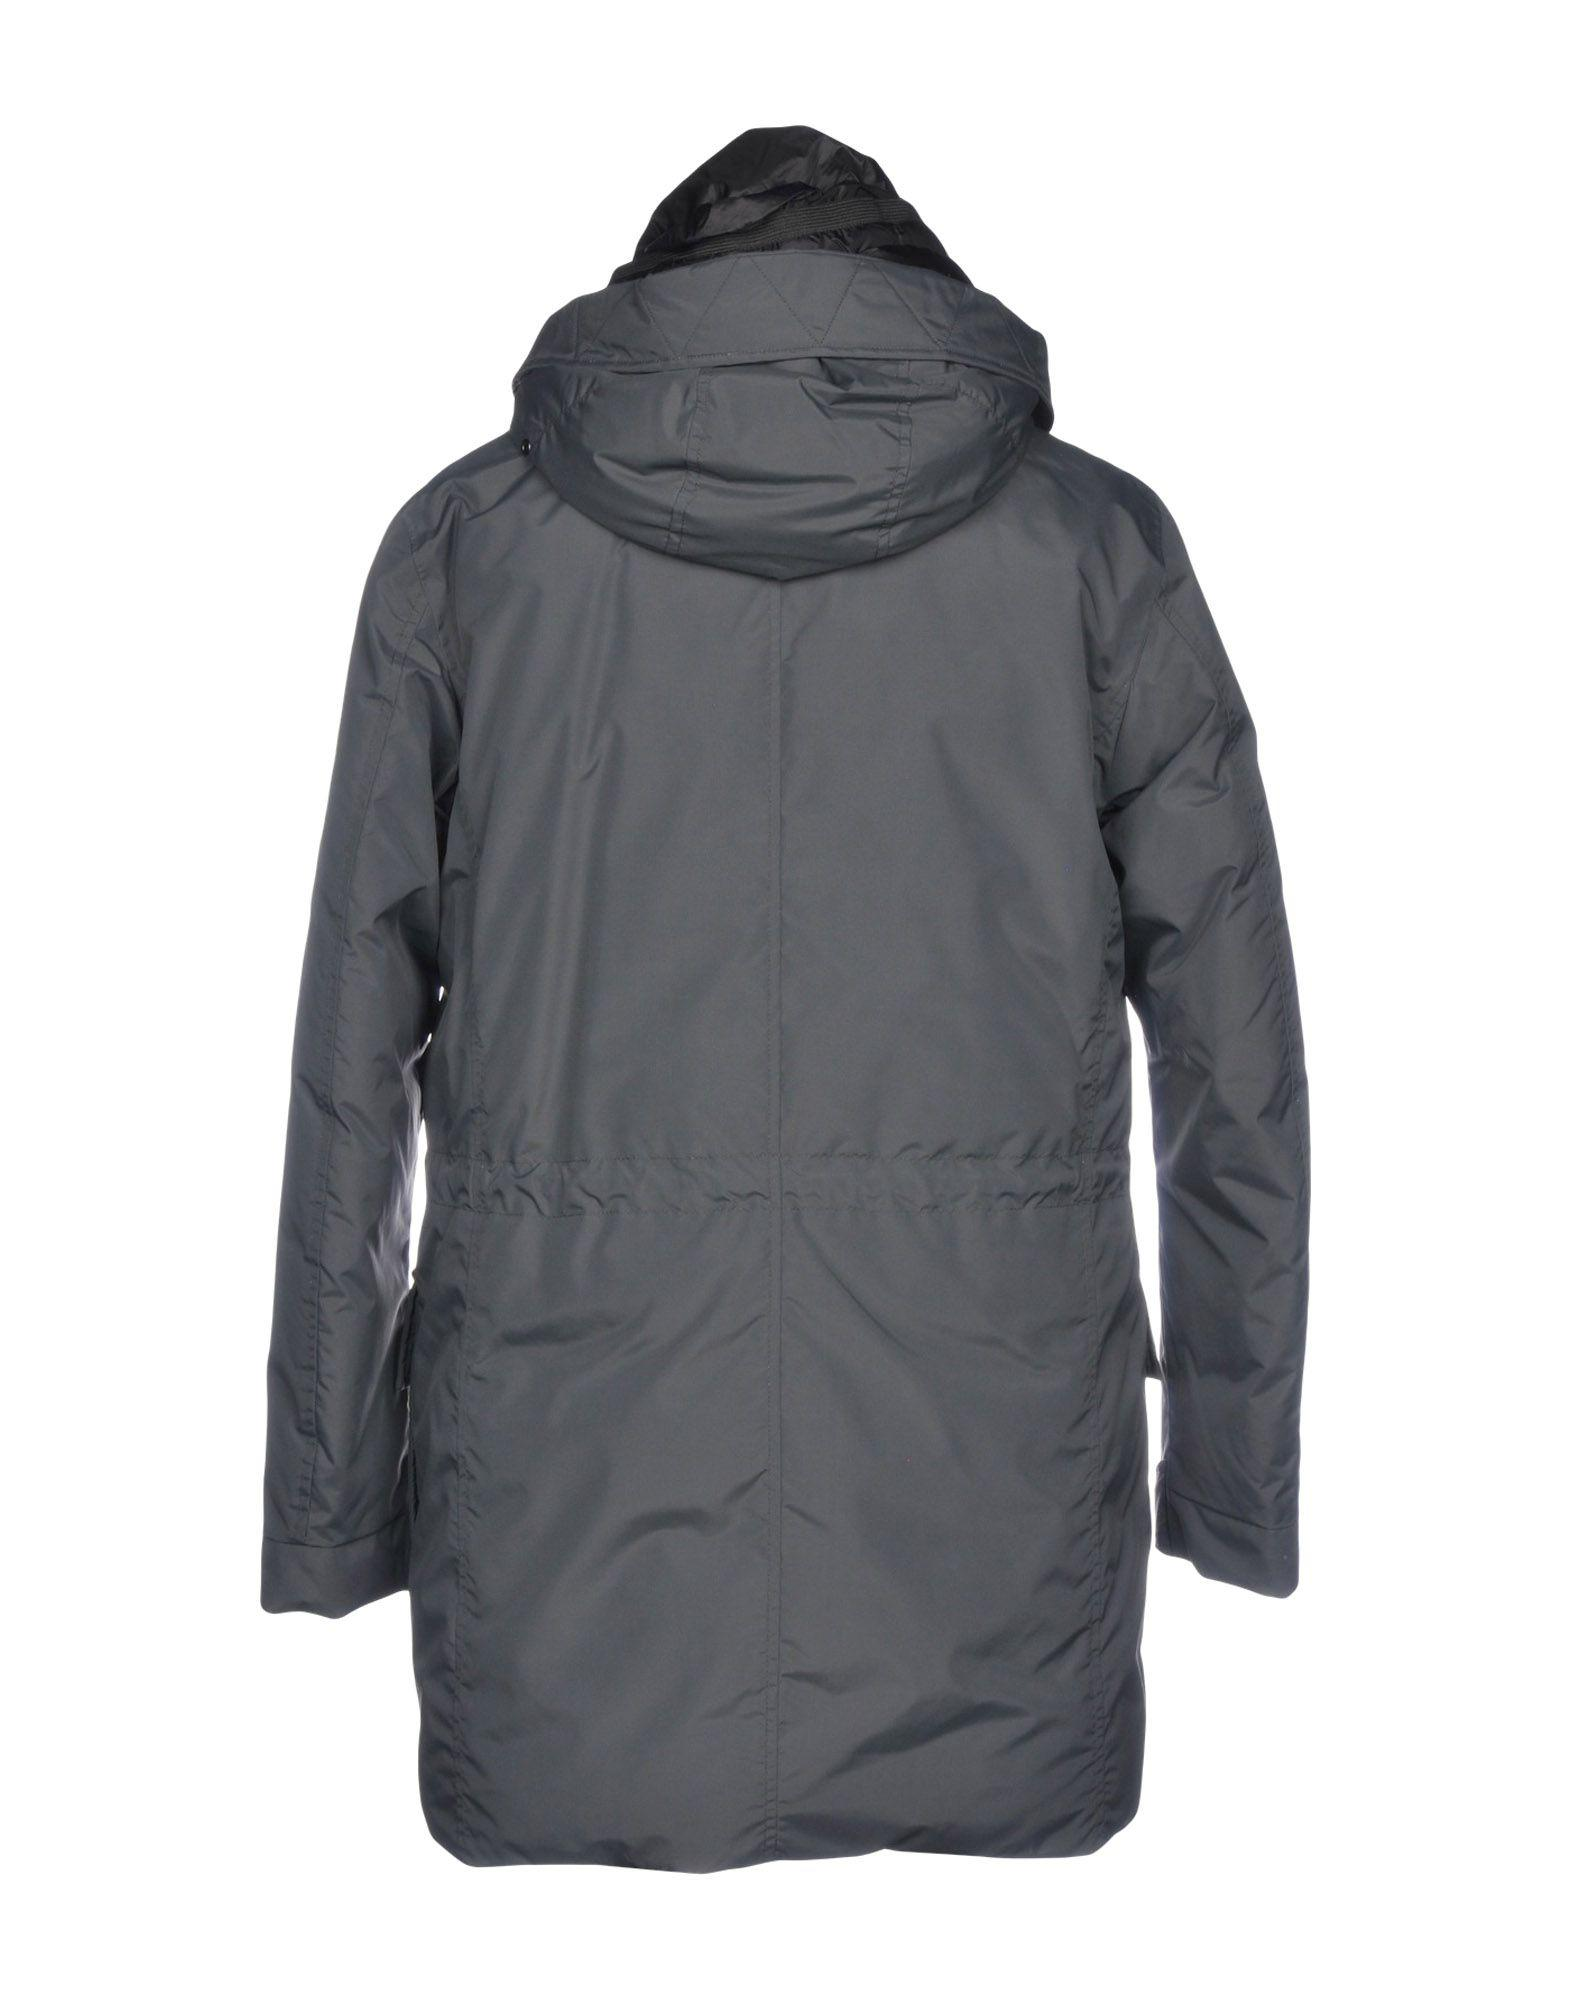 Dekker Goose Down Jacket in Lead (Grey) for Men